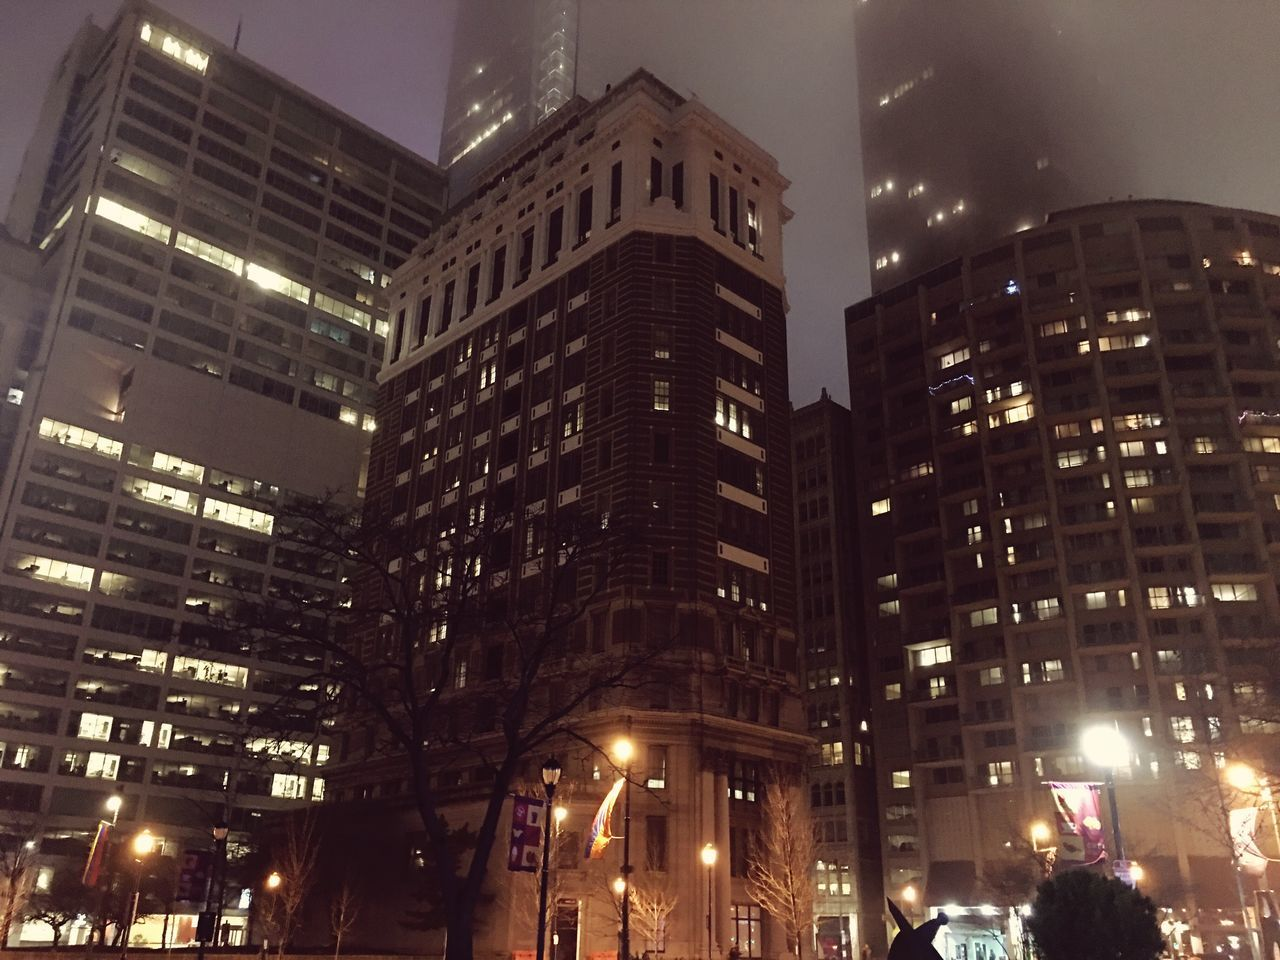 I can't help but wonder, where would we be if we were lost in the mist... Centercity Downtown